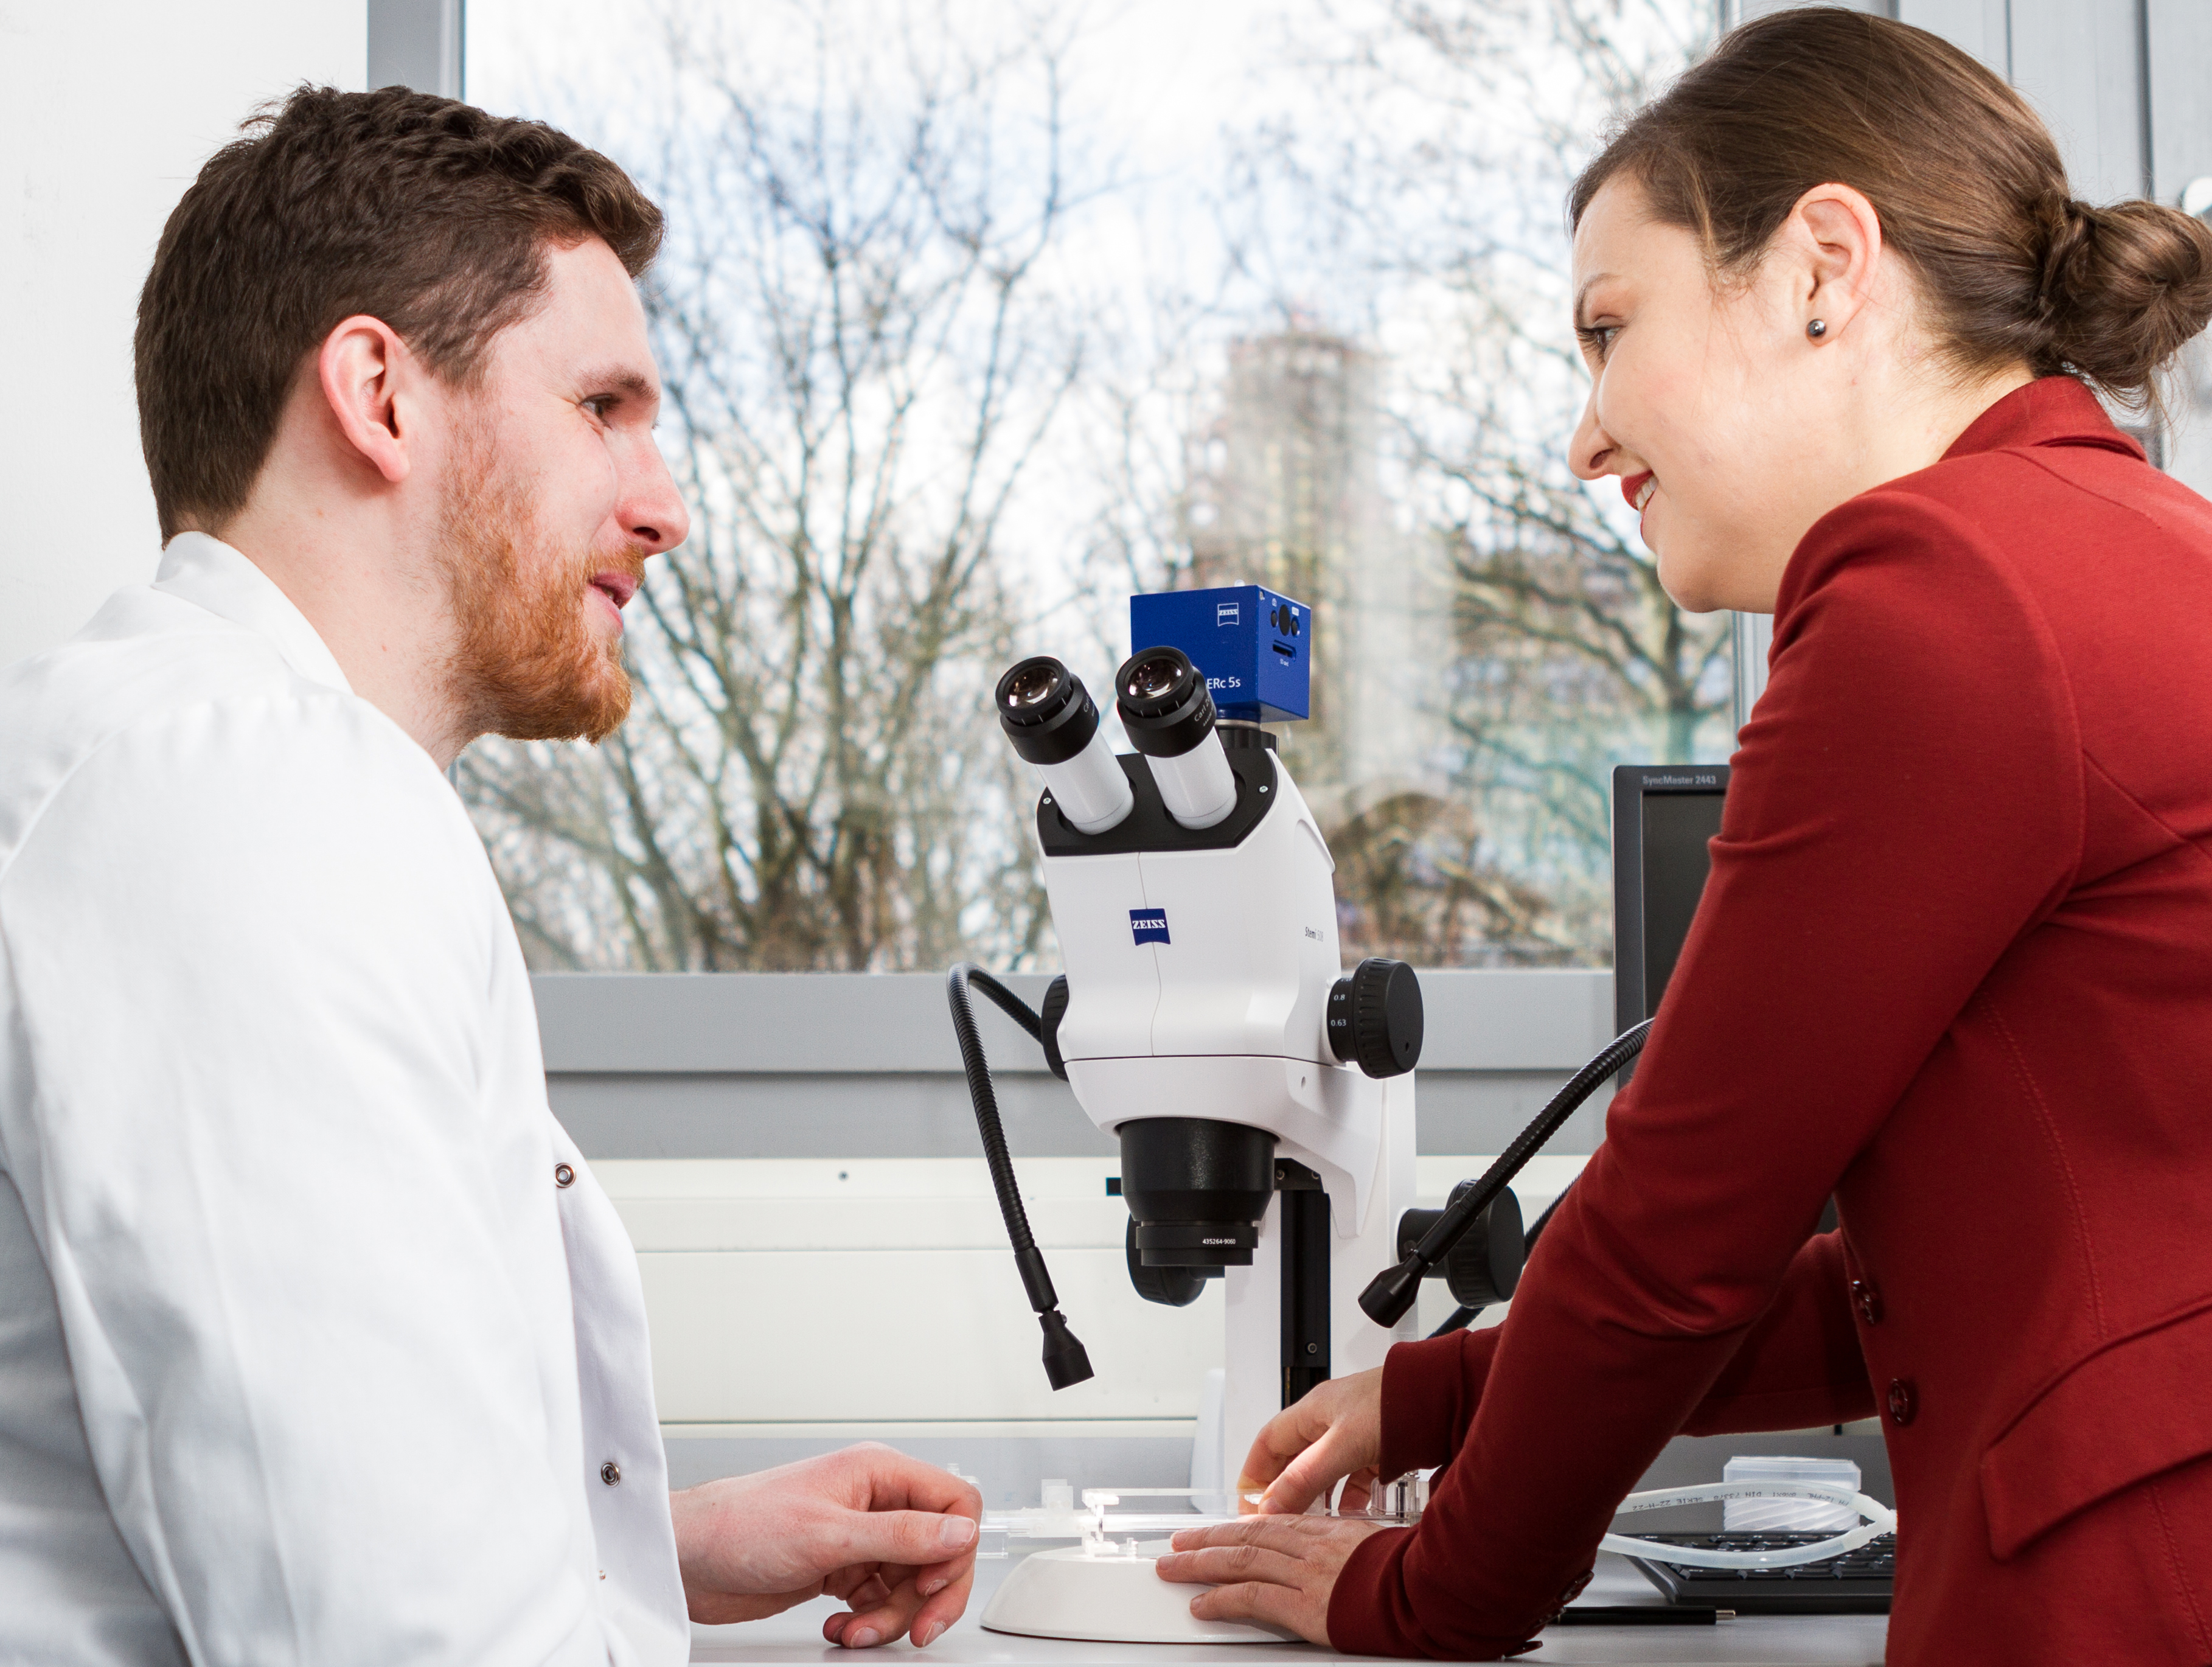 Two scientist at a light microscope